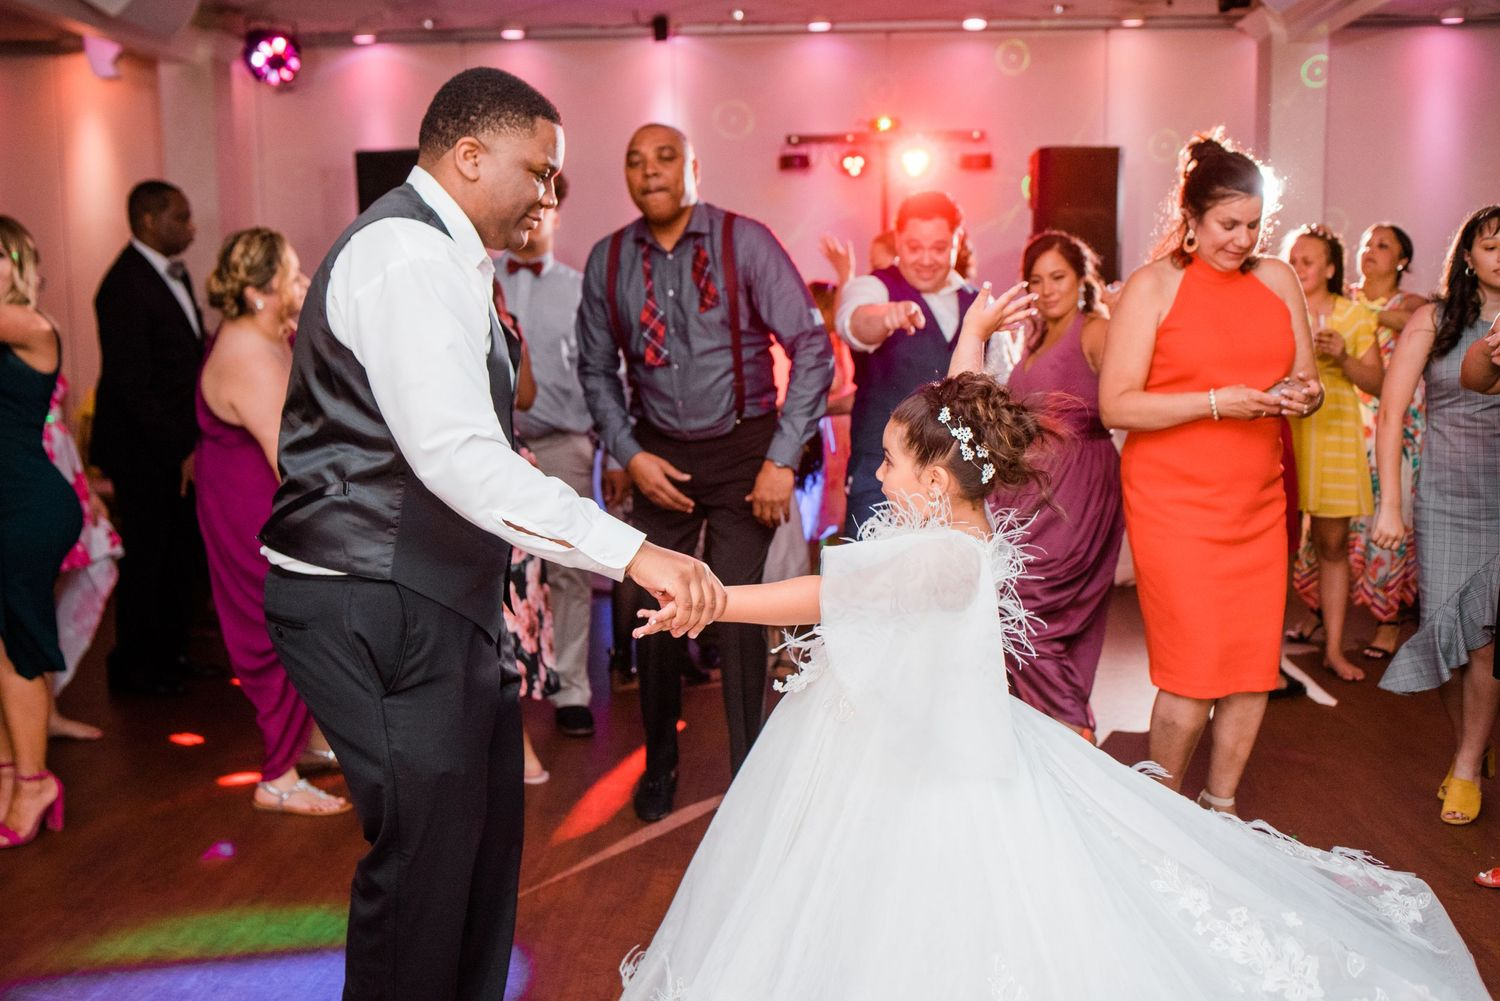 groom dancing with junior bride